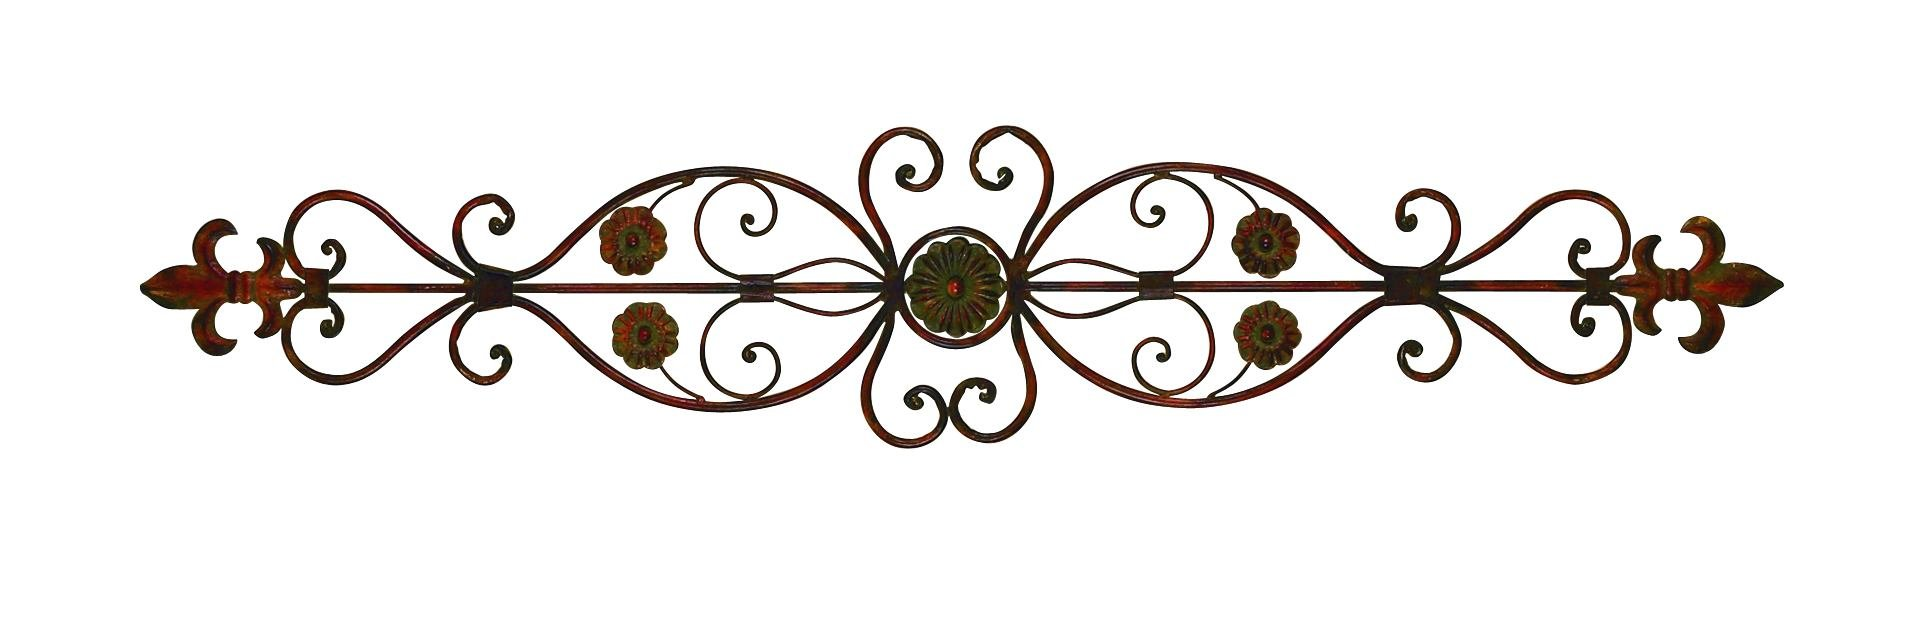 Deco 79 80052 Fleur-de-Lis and Scrollwork Classic Wall Decor, 56''W, 11''H, Rust Brown Finish by Deco 79